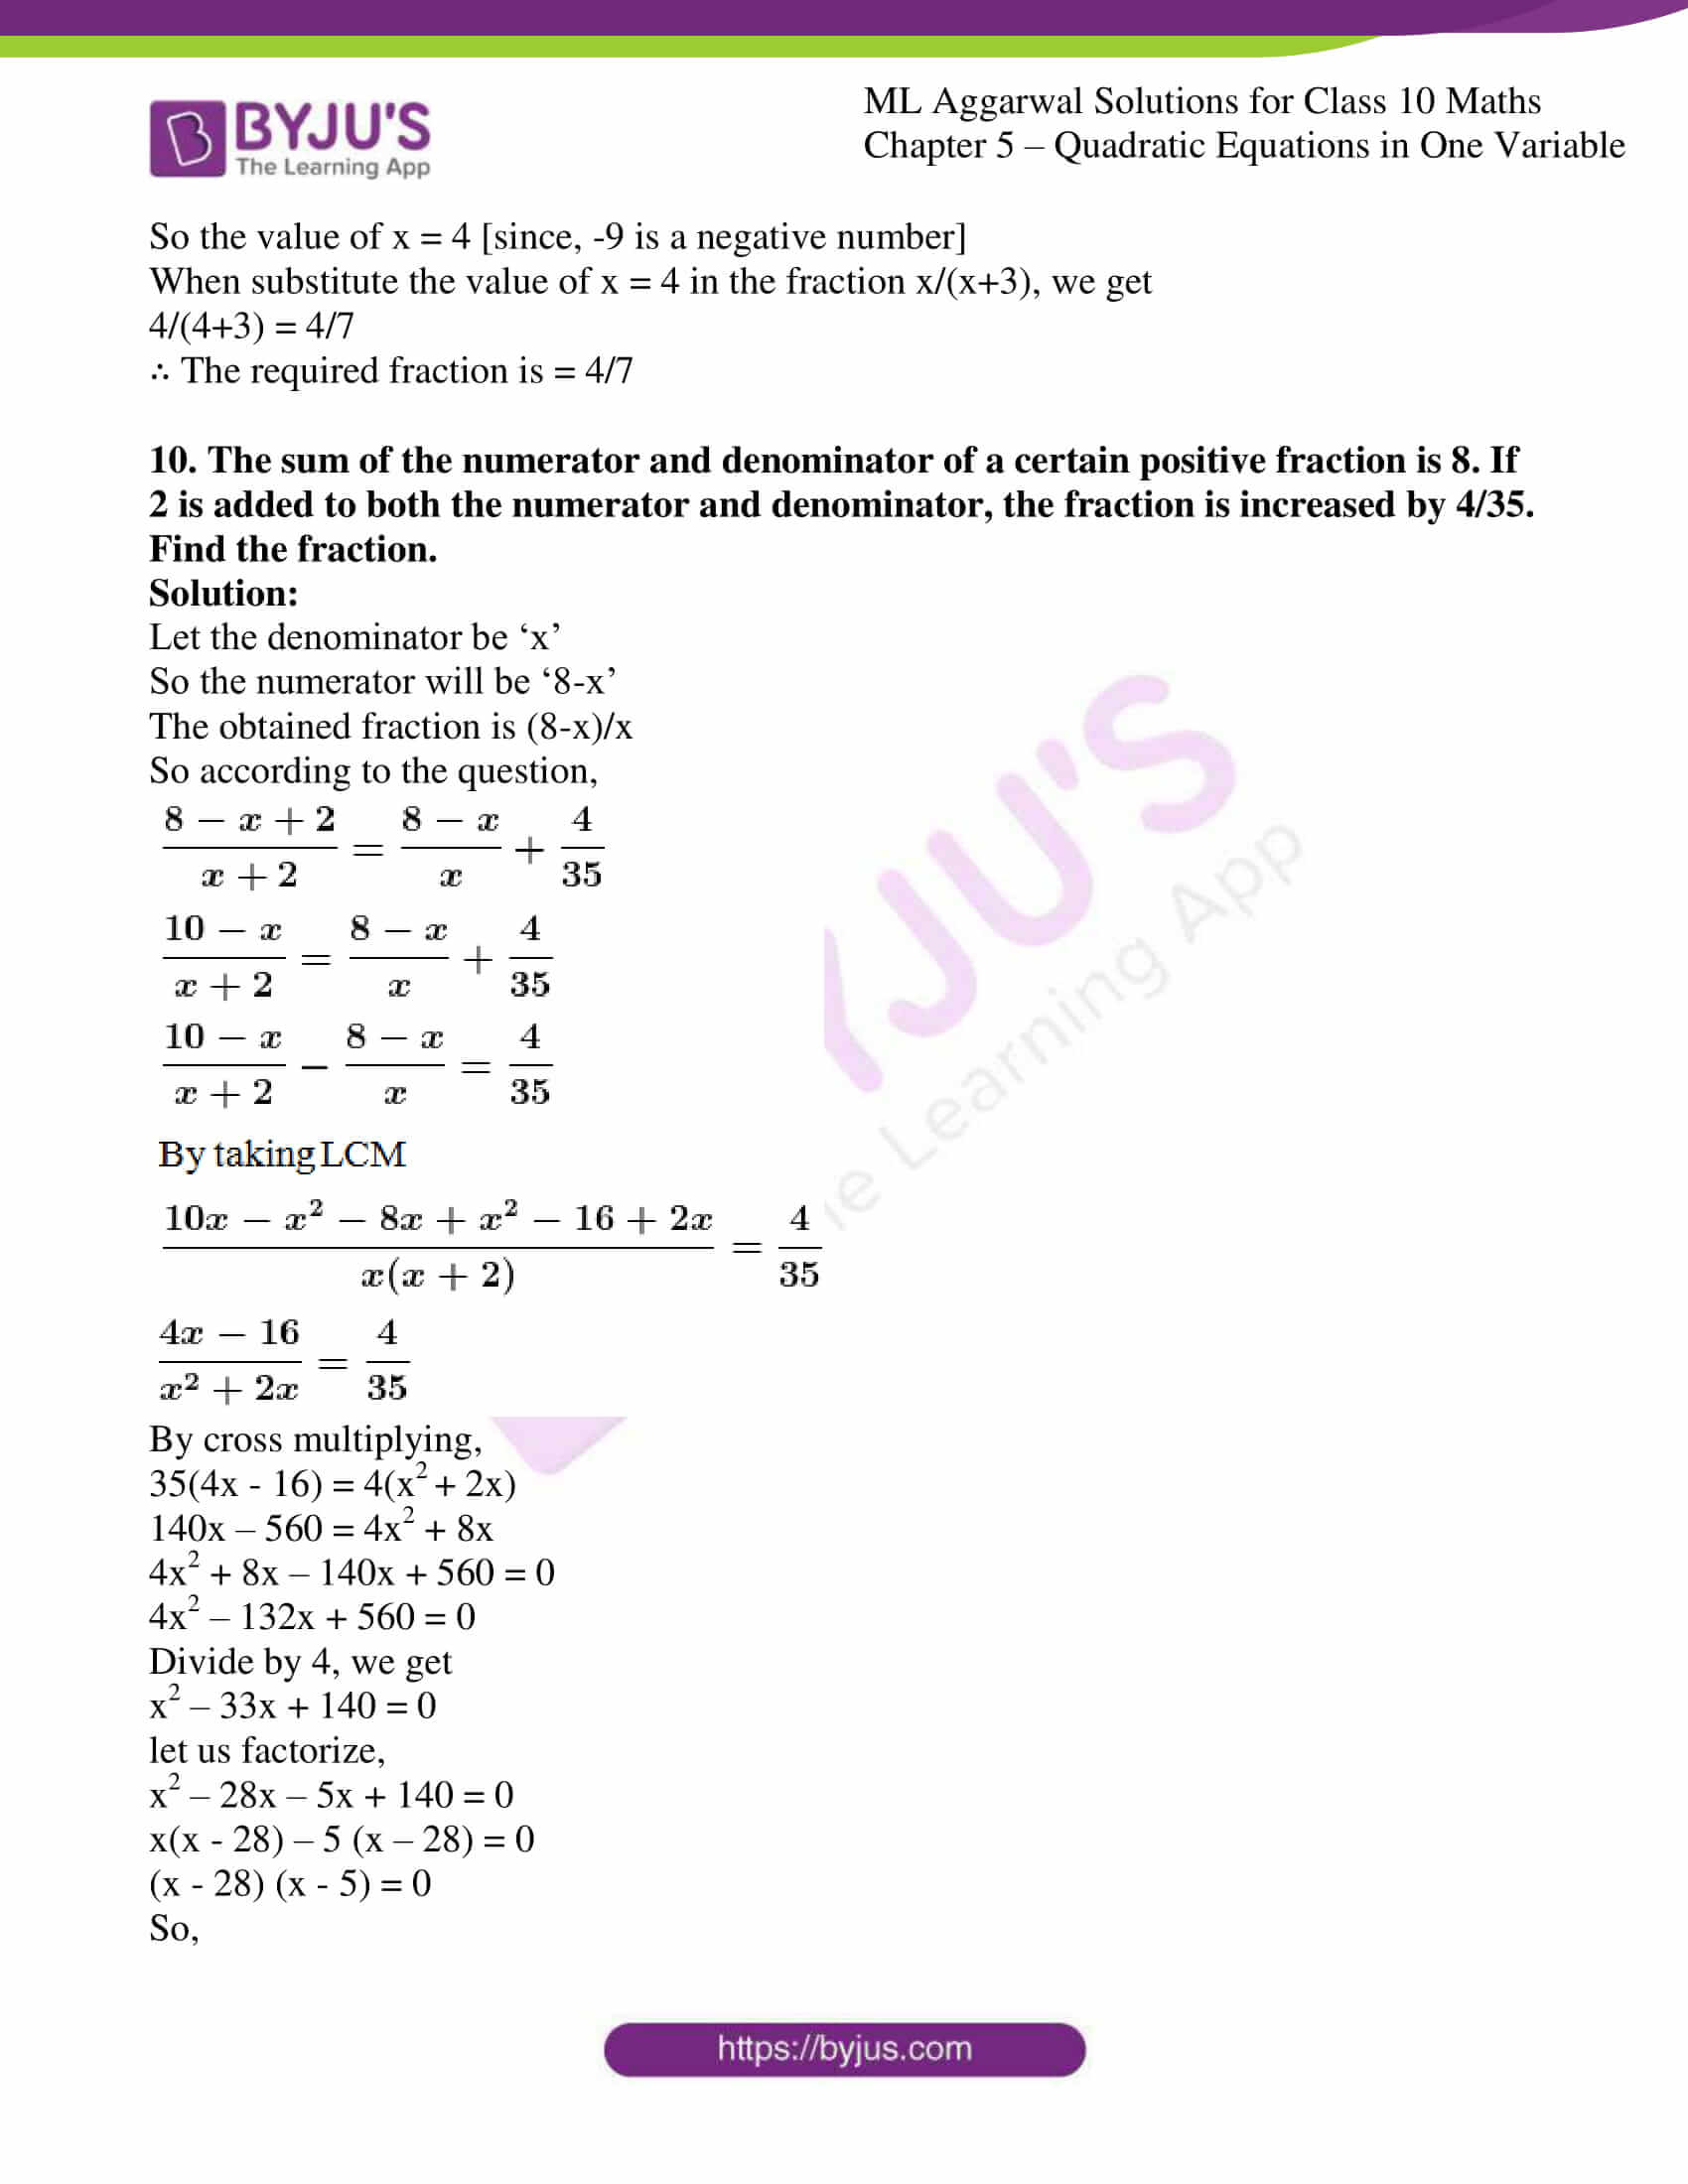 ml aggarwal solutions class 10 maths chapter 5 56